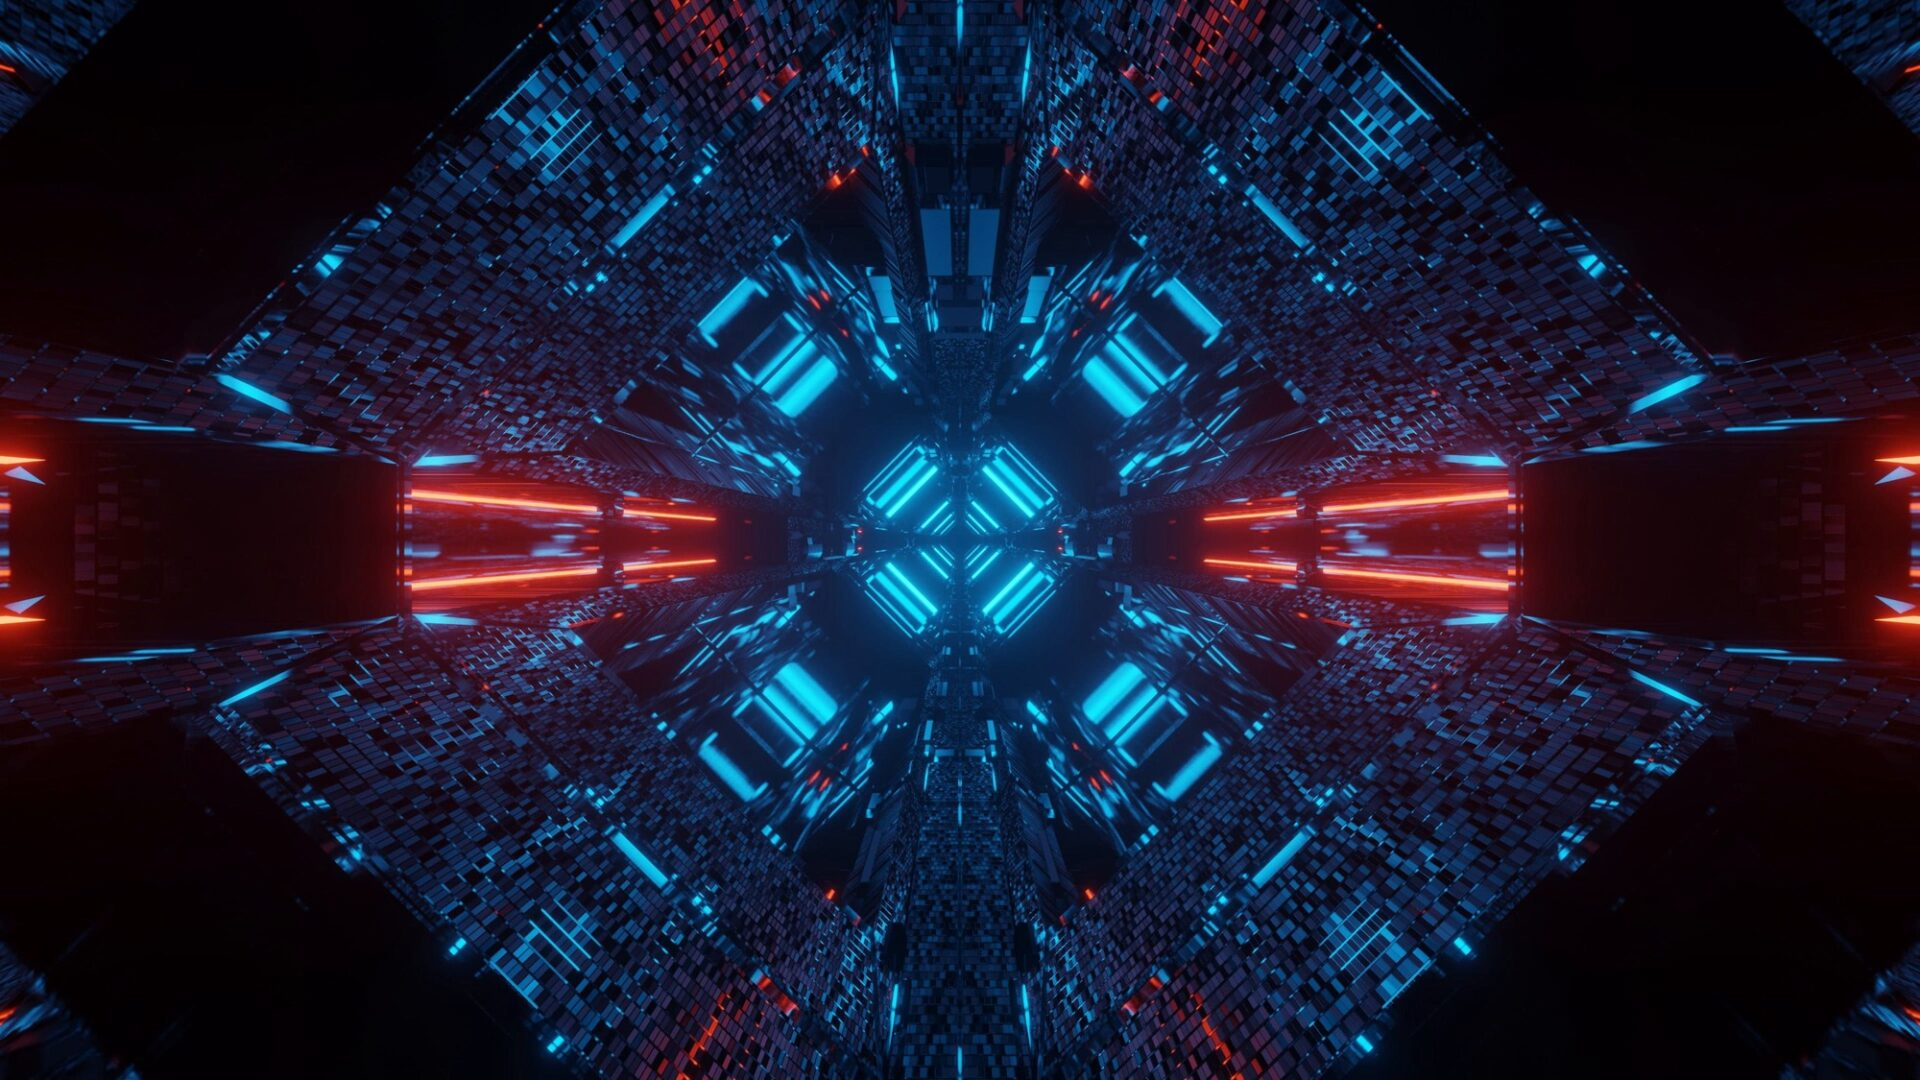 abstract science fiction futuristic background with red and blue neon lights 2 2 - INFORMÀTICA